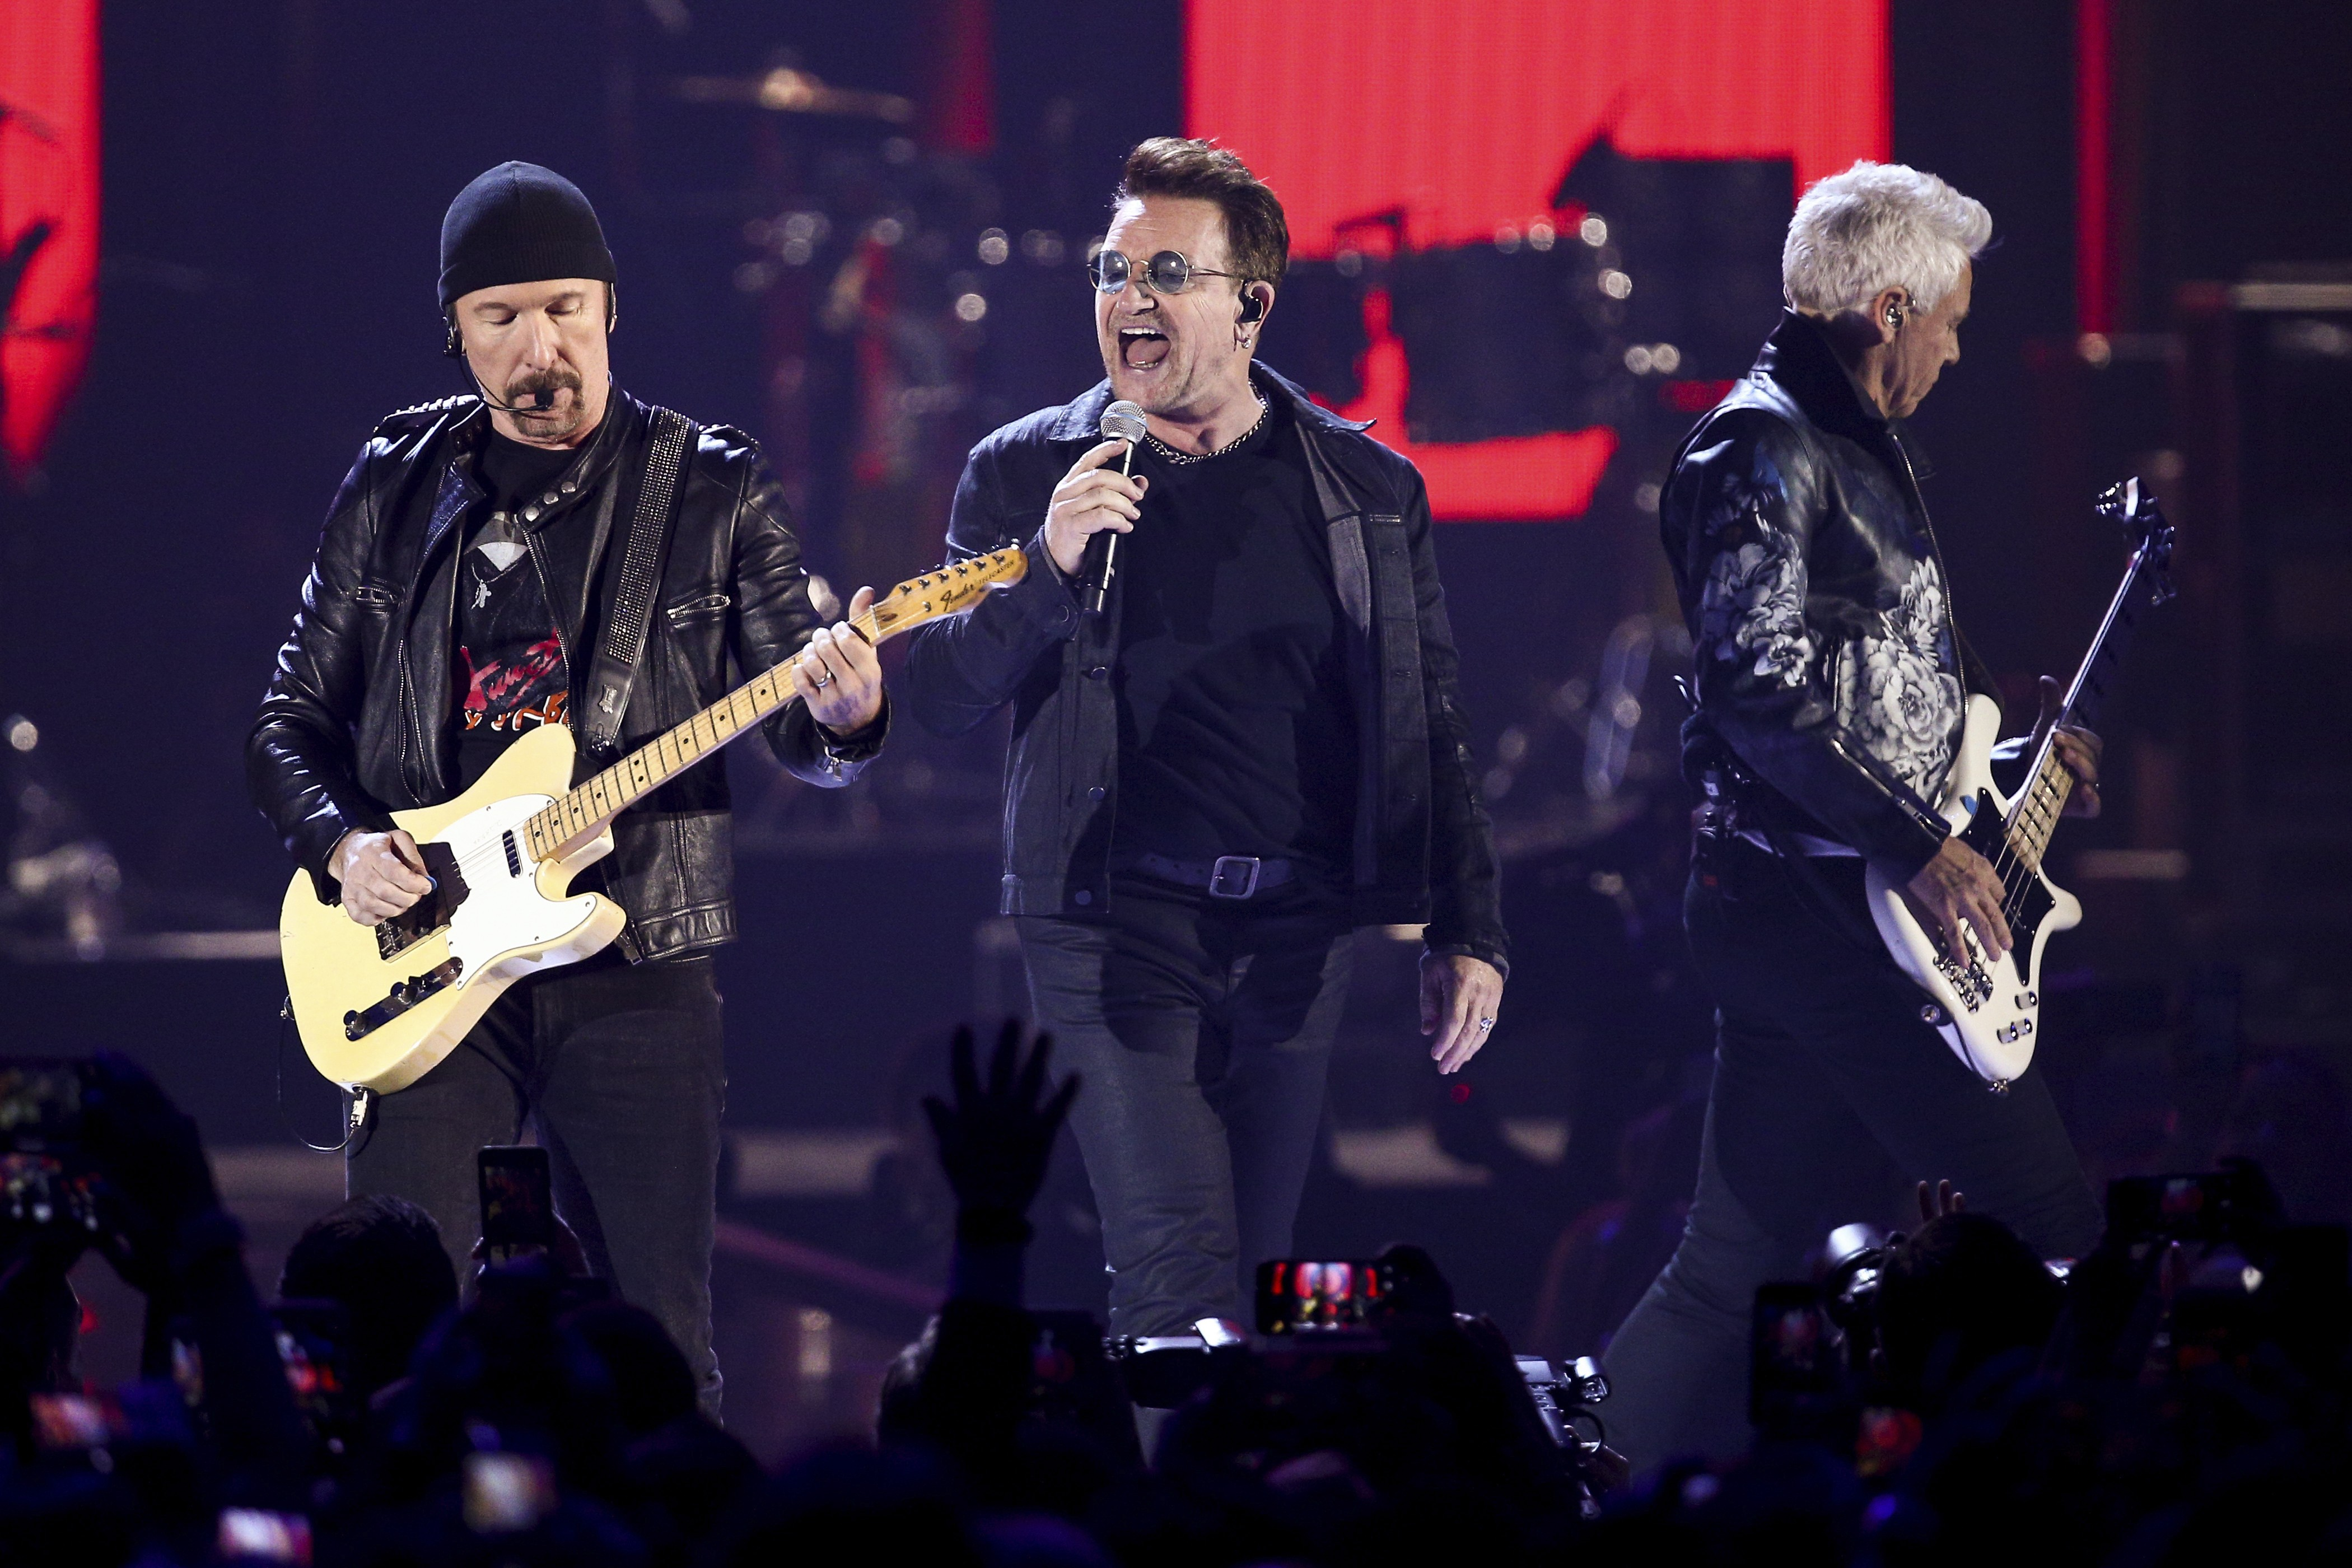 65477721_file-_in_this_sept_23_2016_file_photo_the_edge_from_left_bono_and_adam_clayton_of_the_music